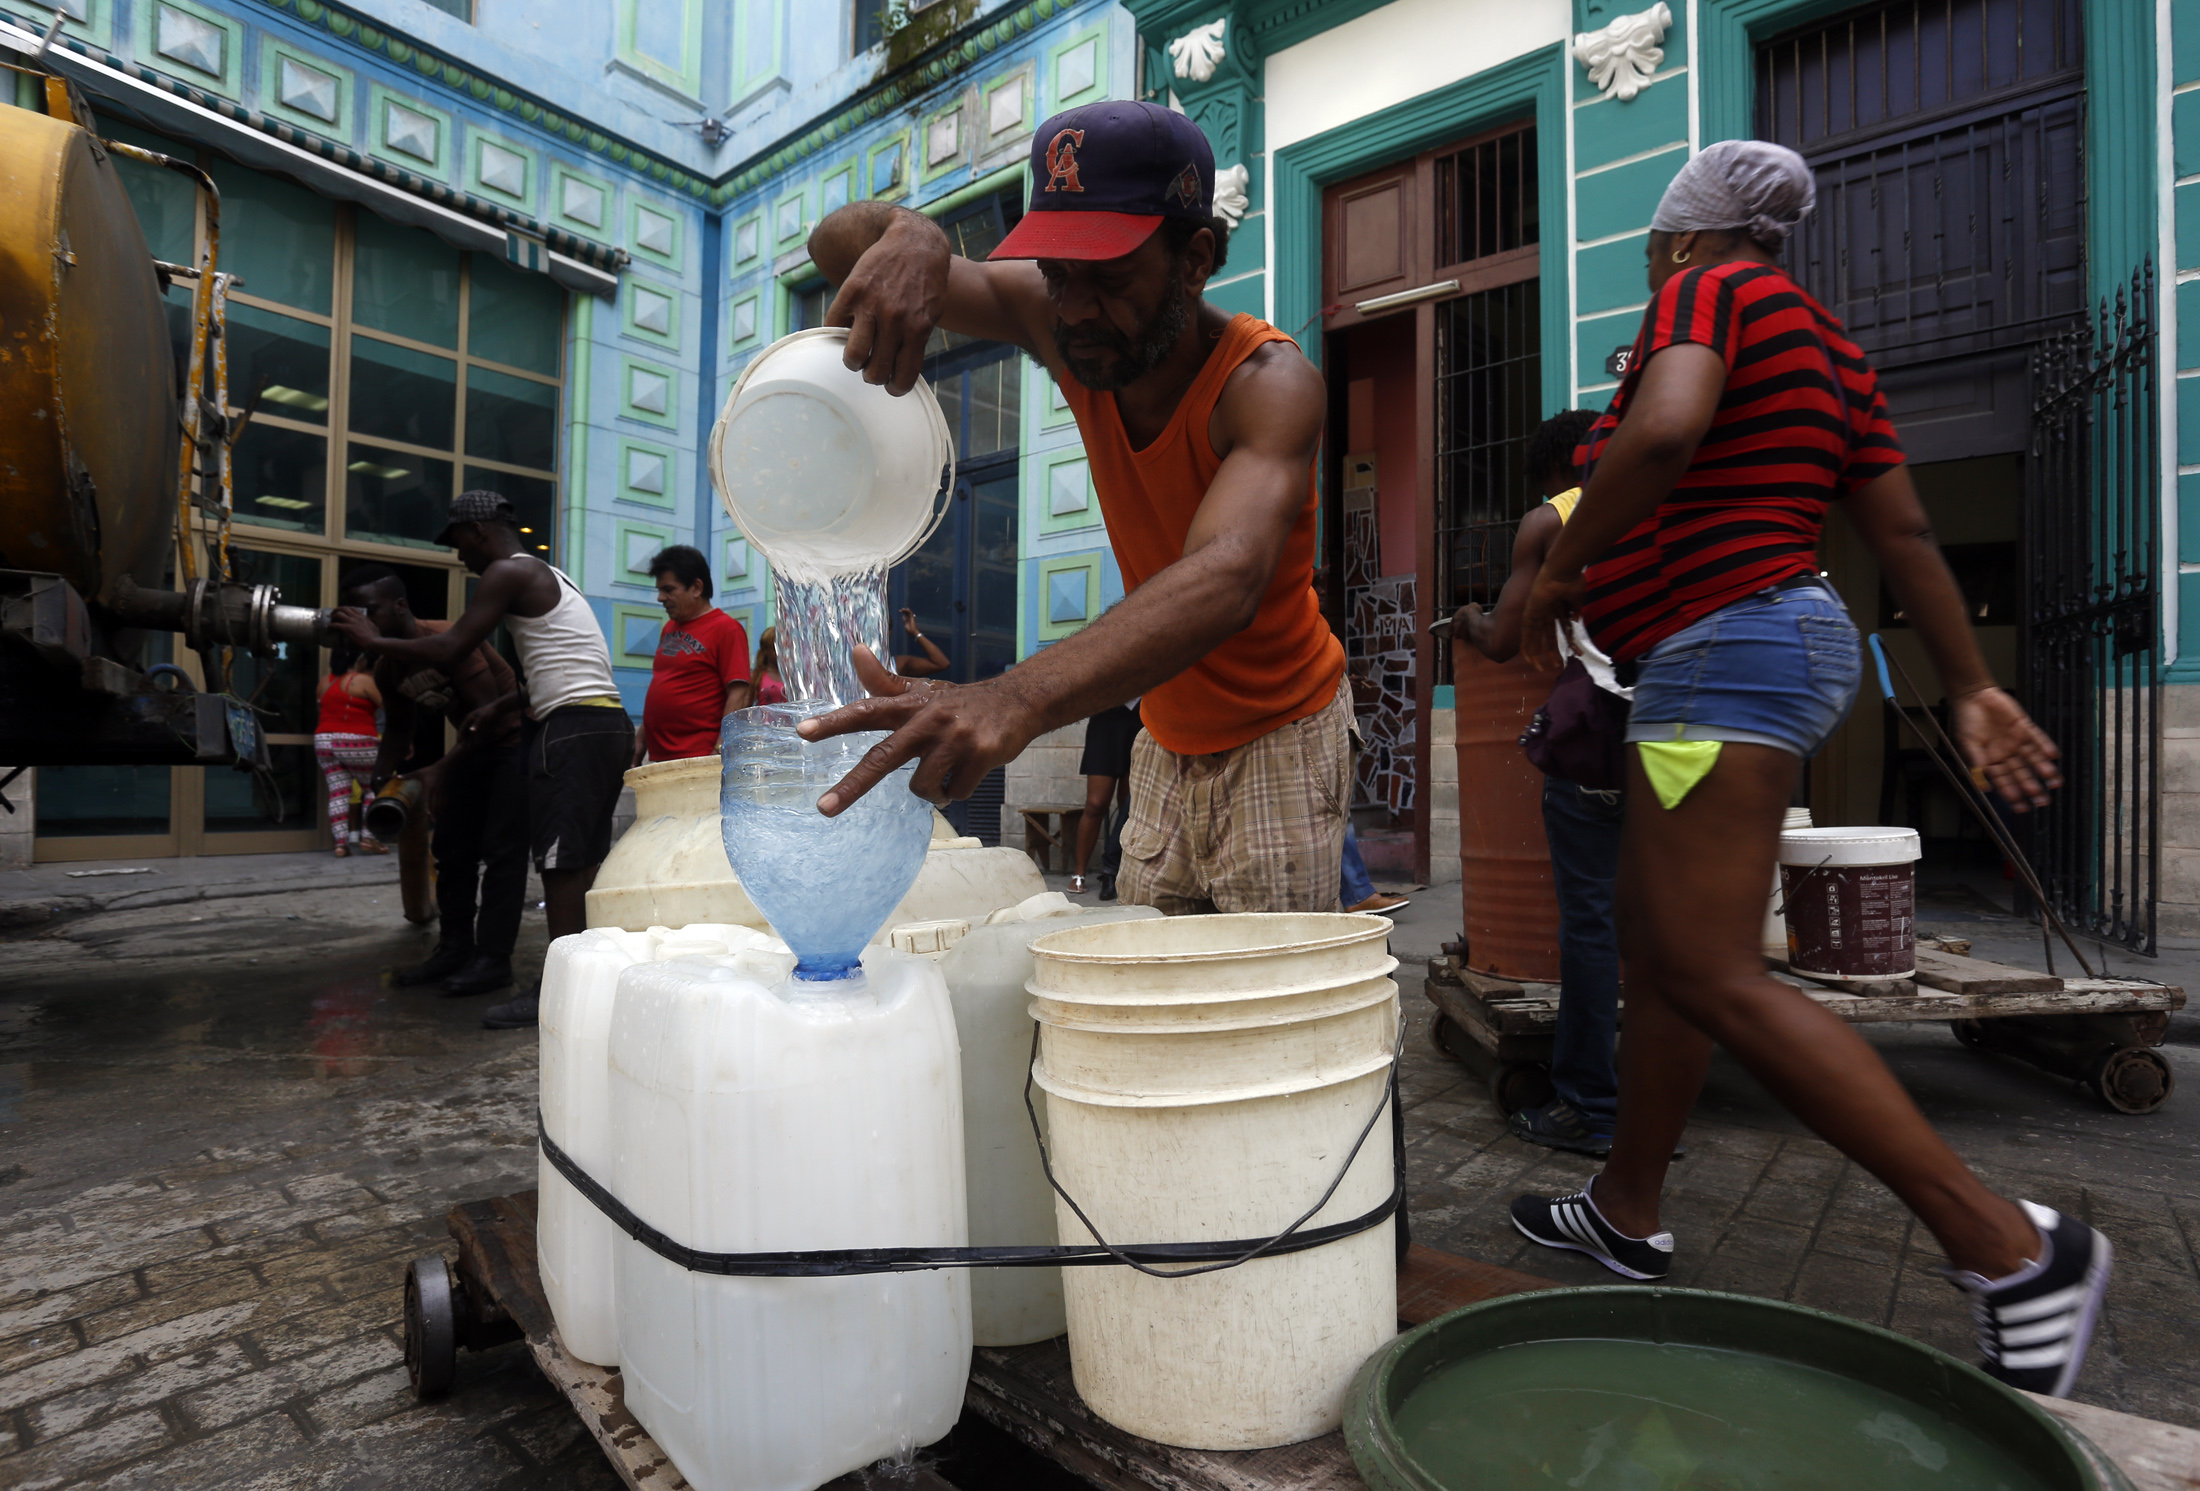 Water Shortages Have A Heavy Impact On Women In Cuba